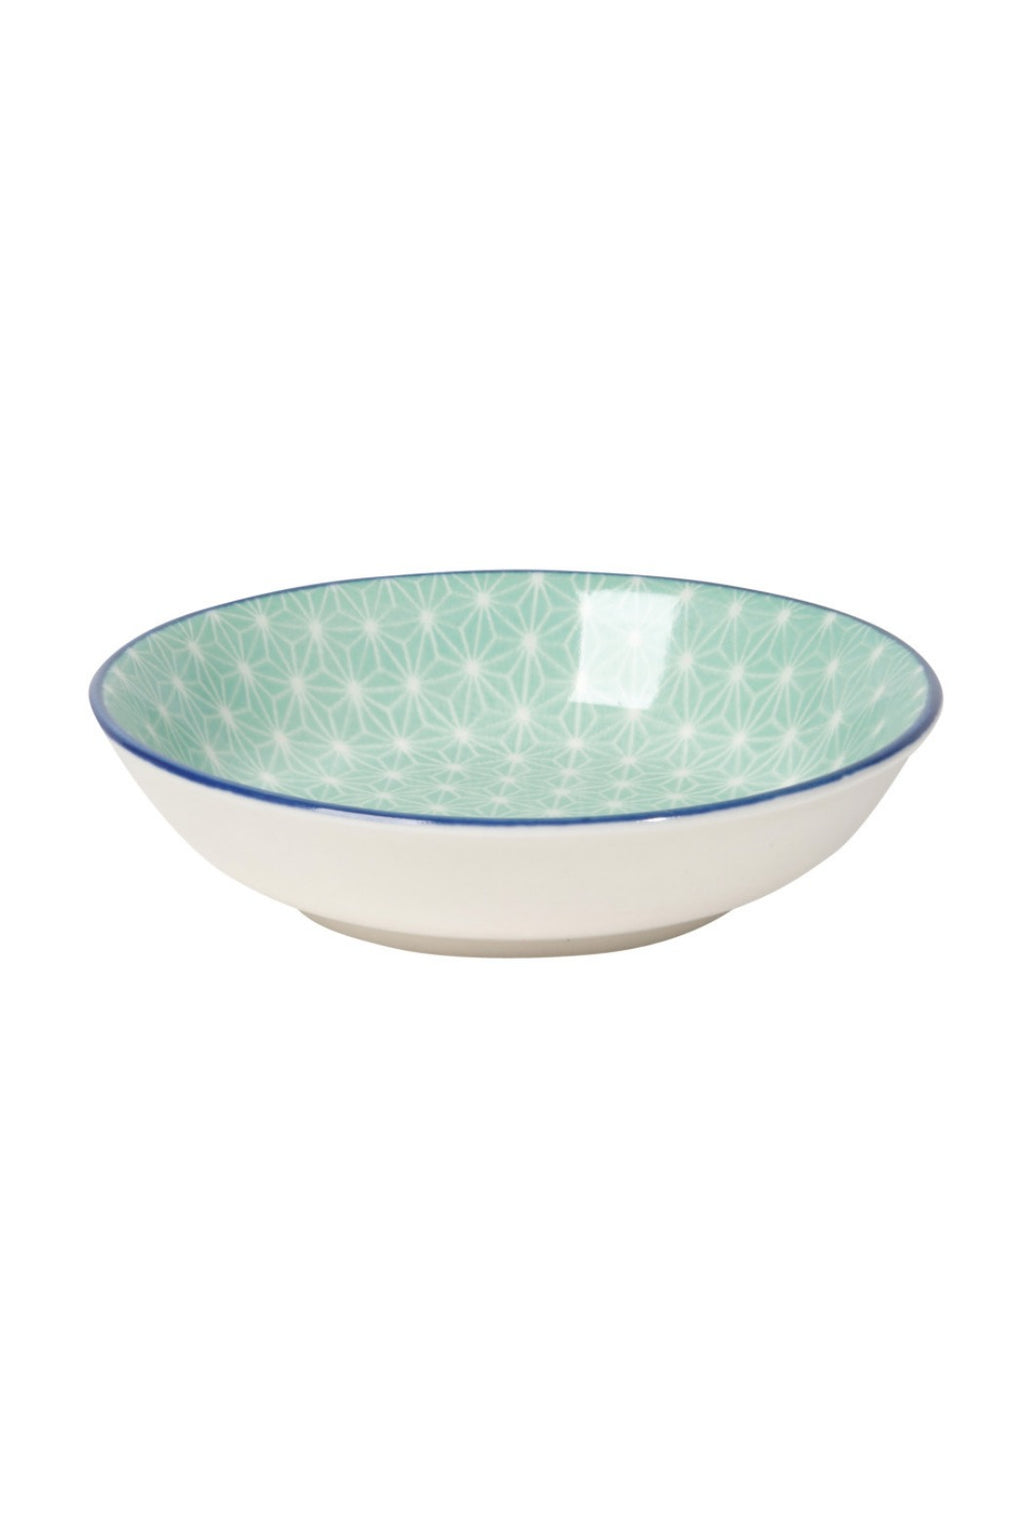 Now Designs Dip Bowl - Aqua Stars